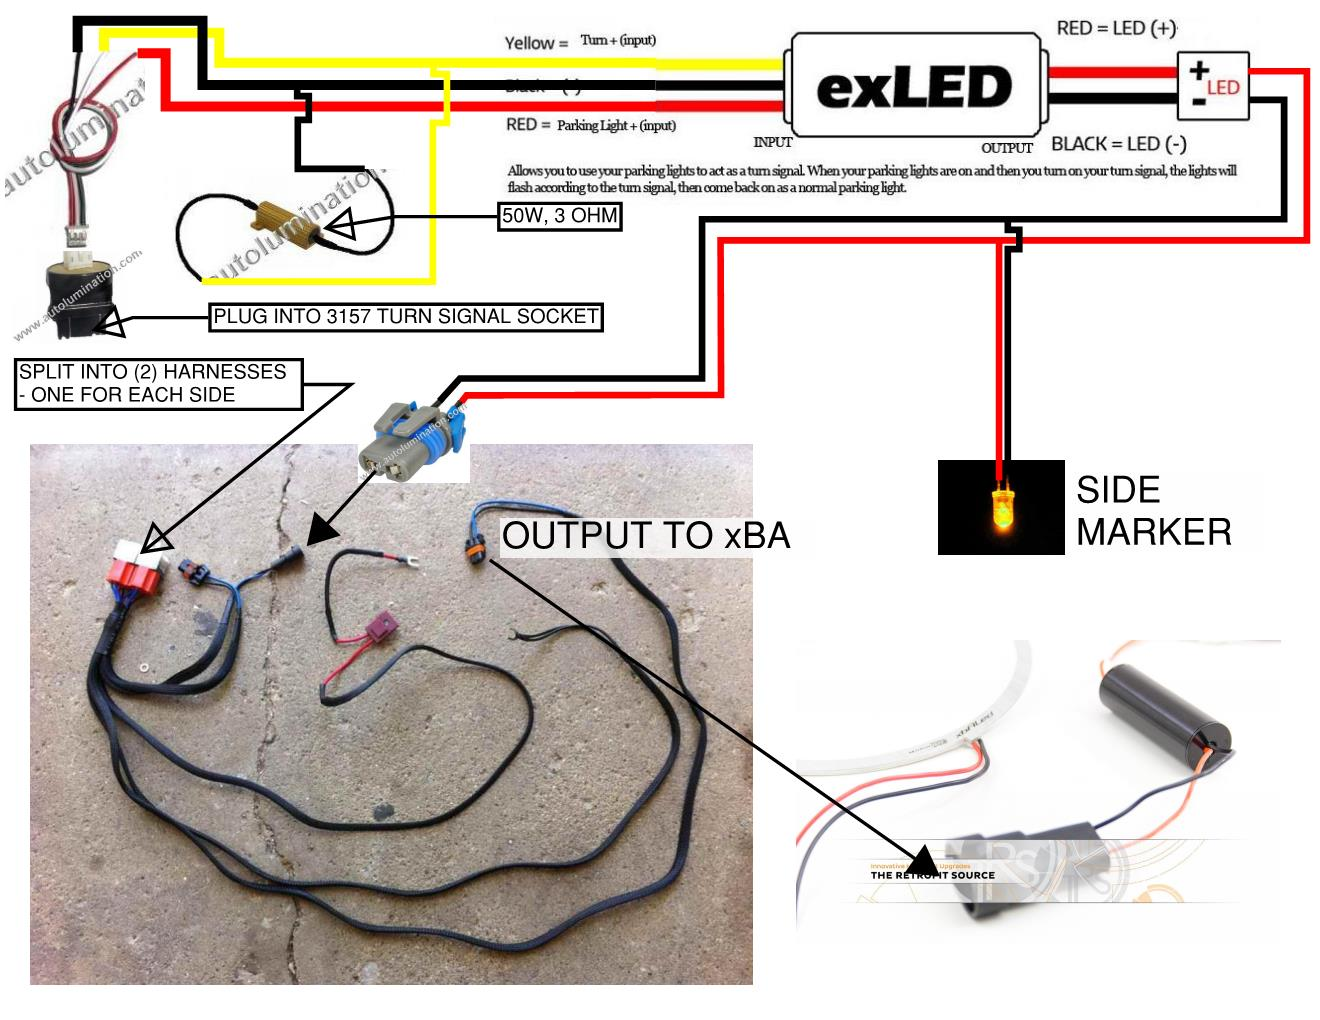 Dodge LED Turn Signal Wire Diagram ver 3 led turn signal causes all lights to flash hidplanet the  at gsmx.co